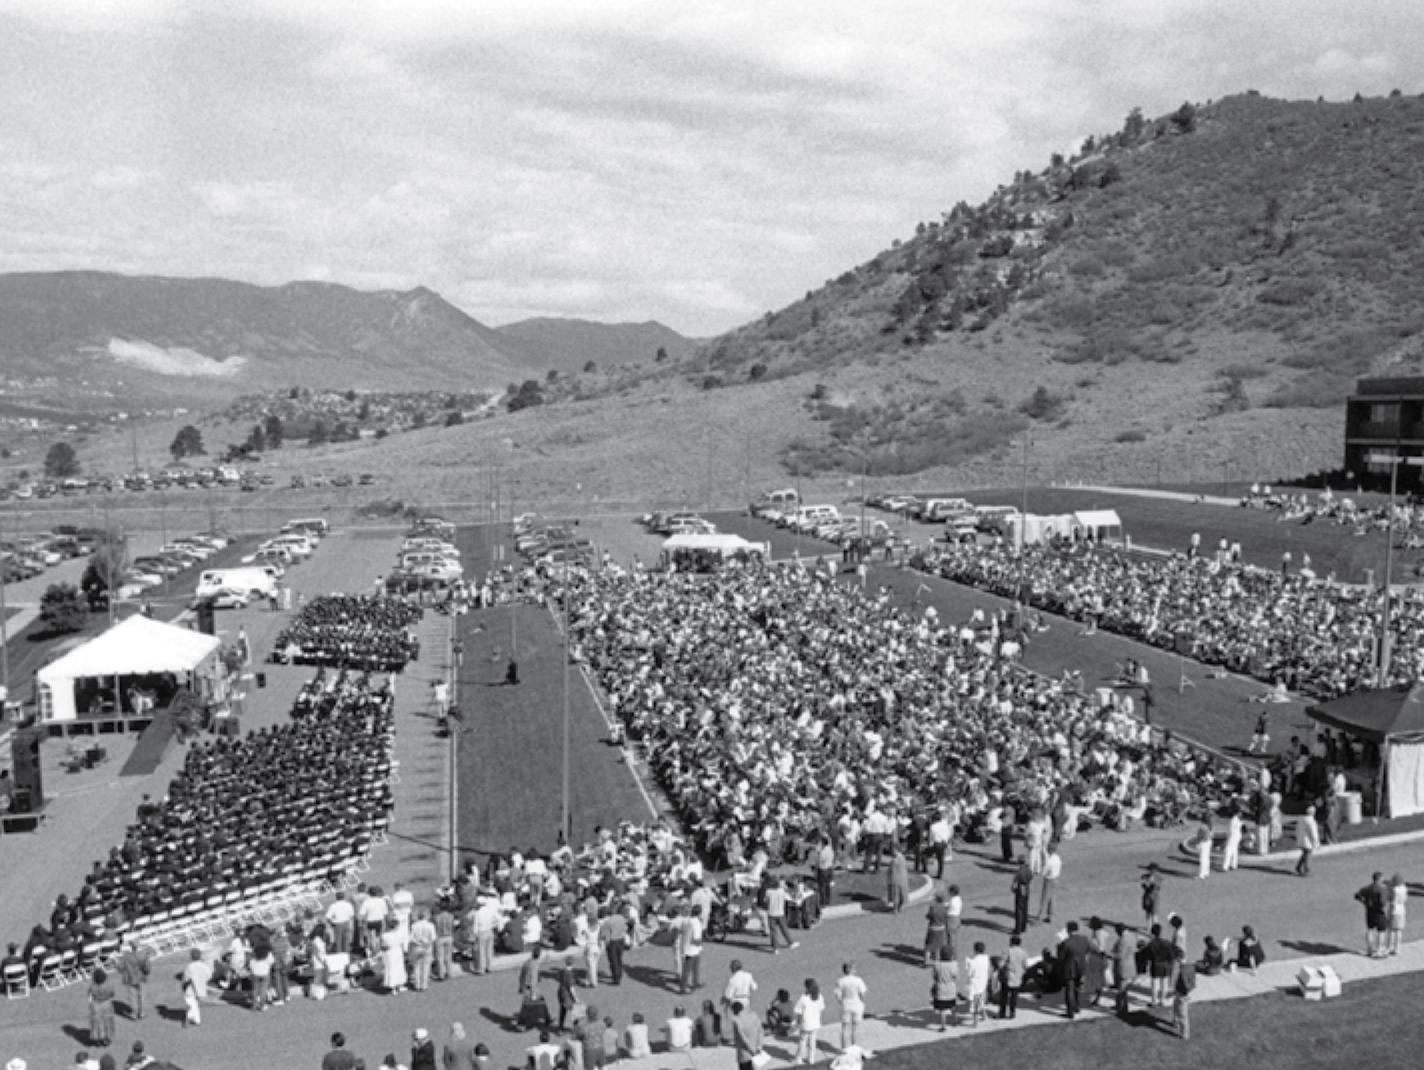 The 1995 spring commencement ceremony on the UCCS campus